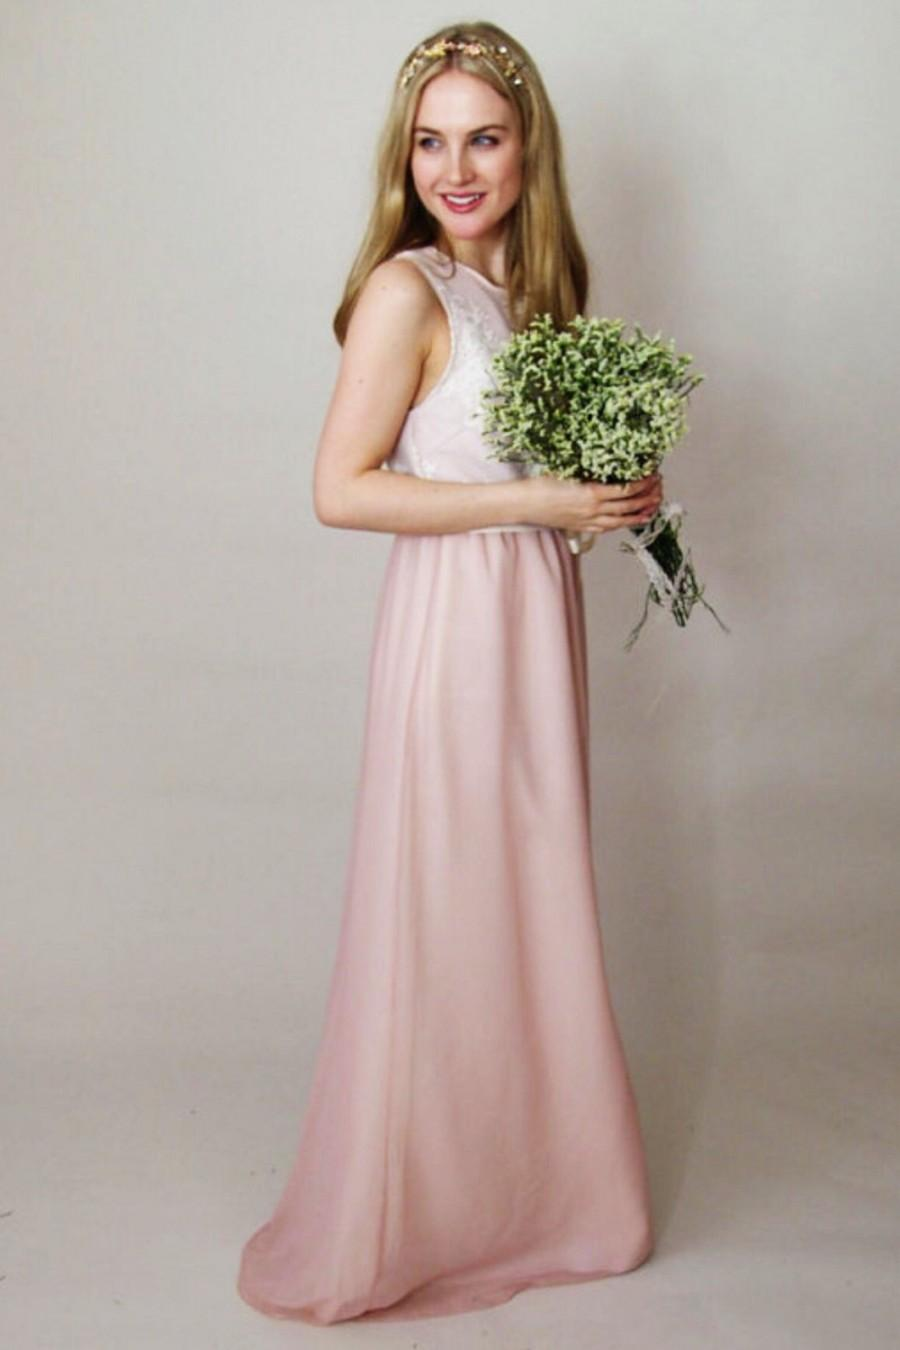 Wedding - HOLLIE - scoop neck bridesmaid dress in blush pink chiffon with lace bodice and grosgrain ribbon tied at the waist - simple, modern, bohemia